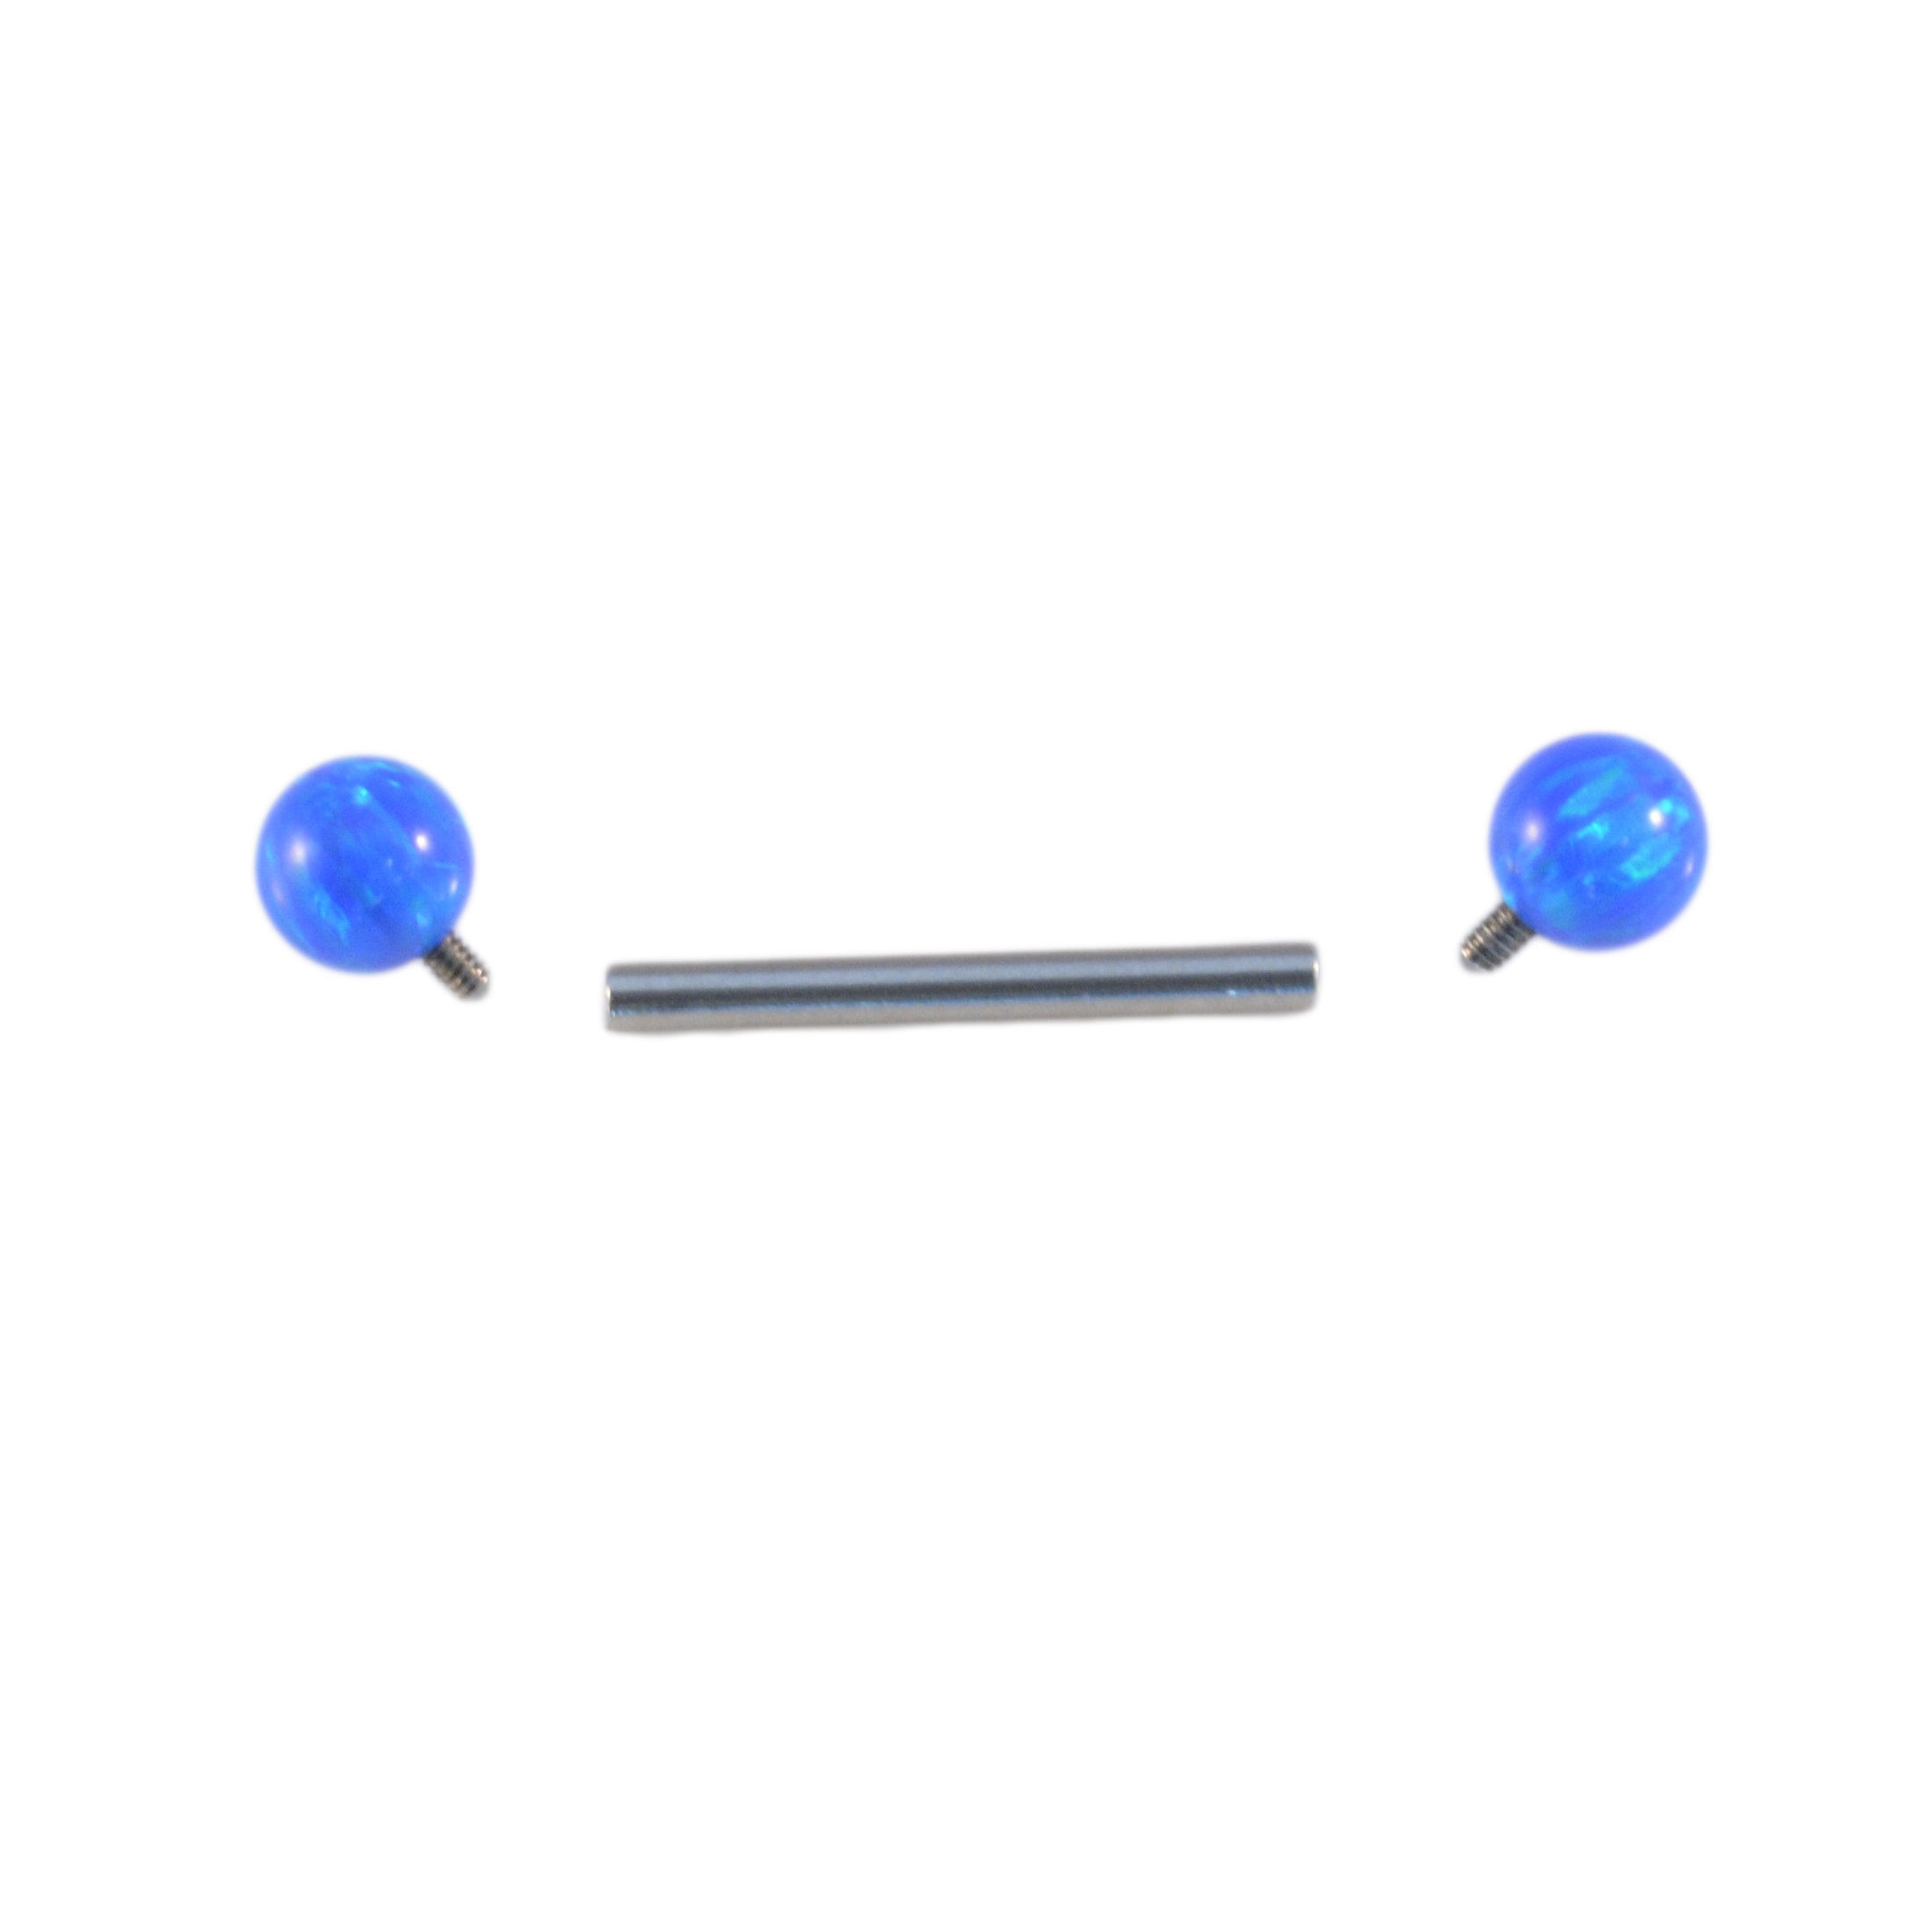 INTERNALLY THREADED TITANIUM BAR WITH SYNTHETIC OPAL BALLS ~ 1.6mm NIPPLE TONGUE